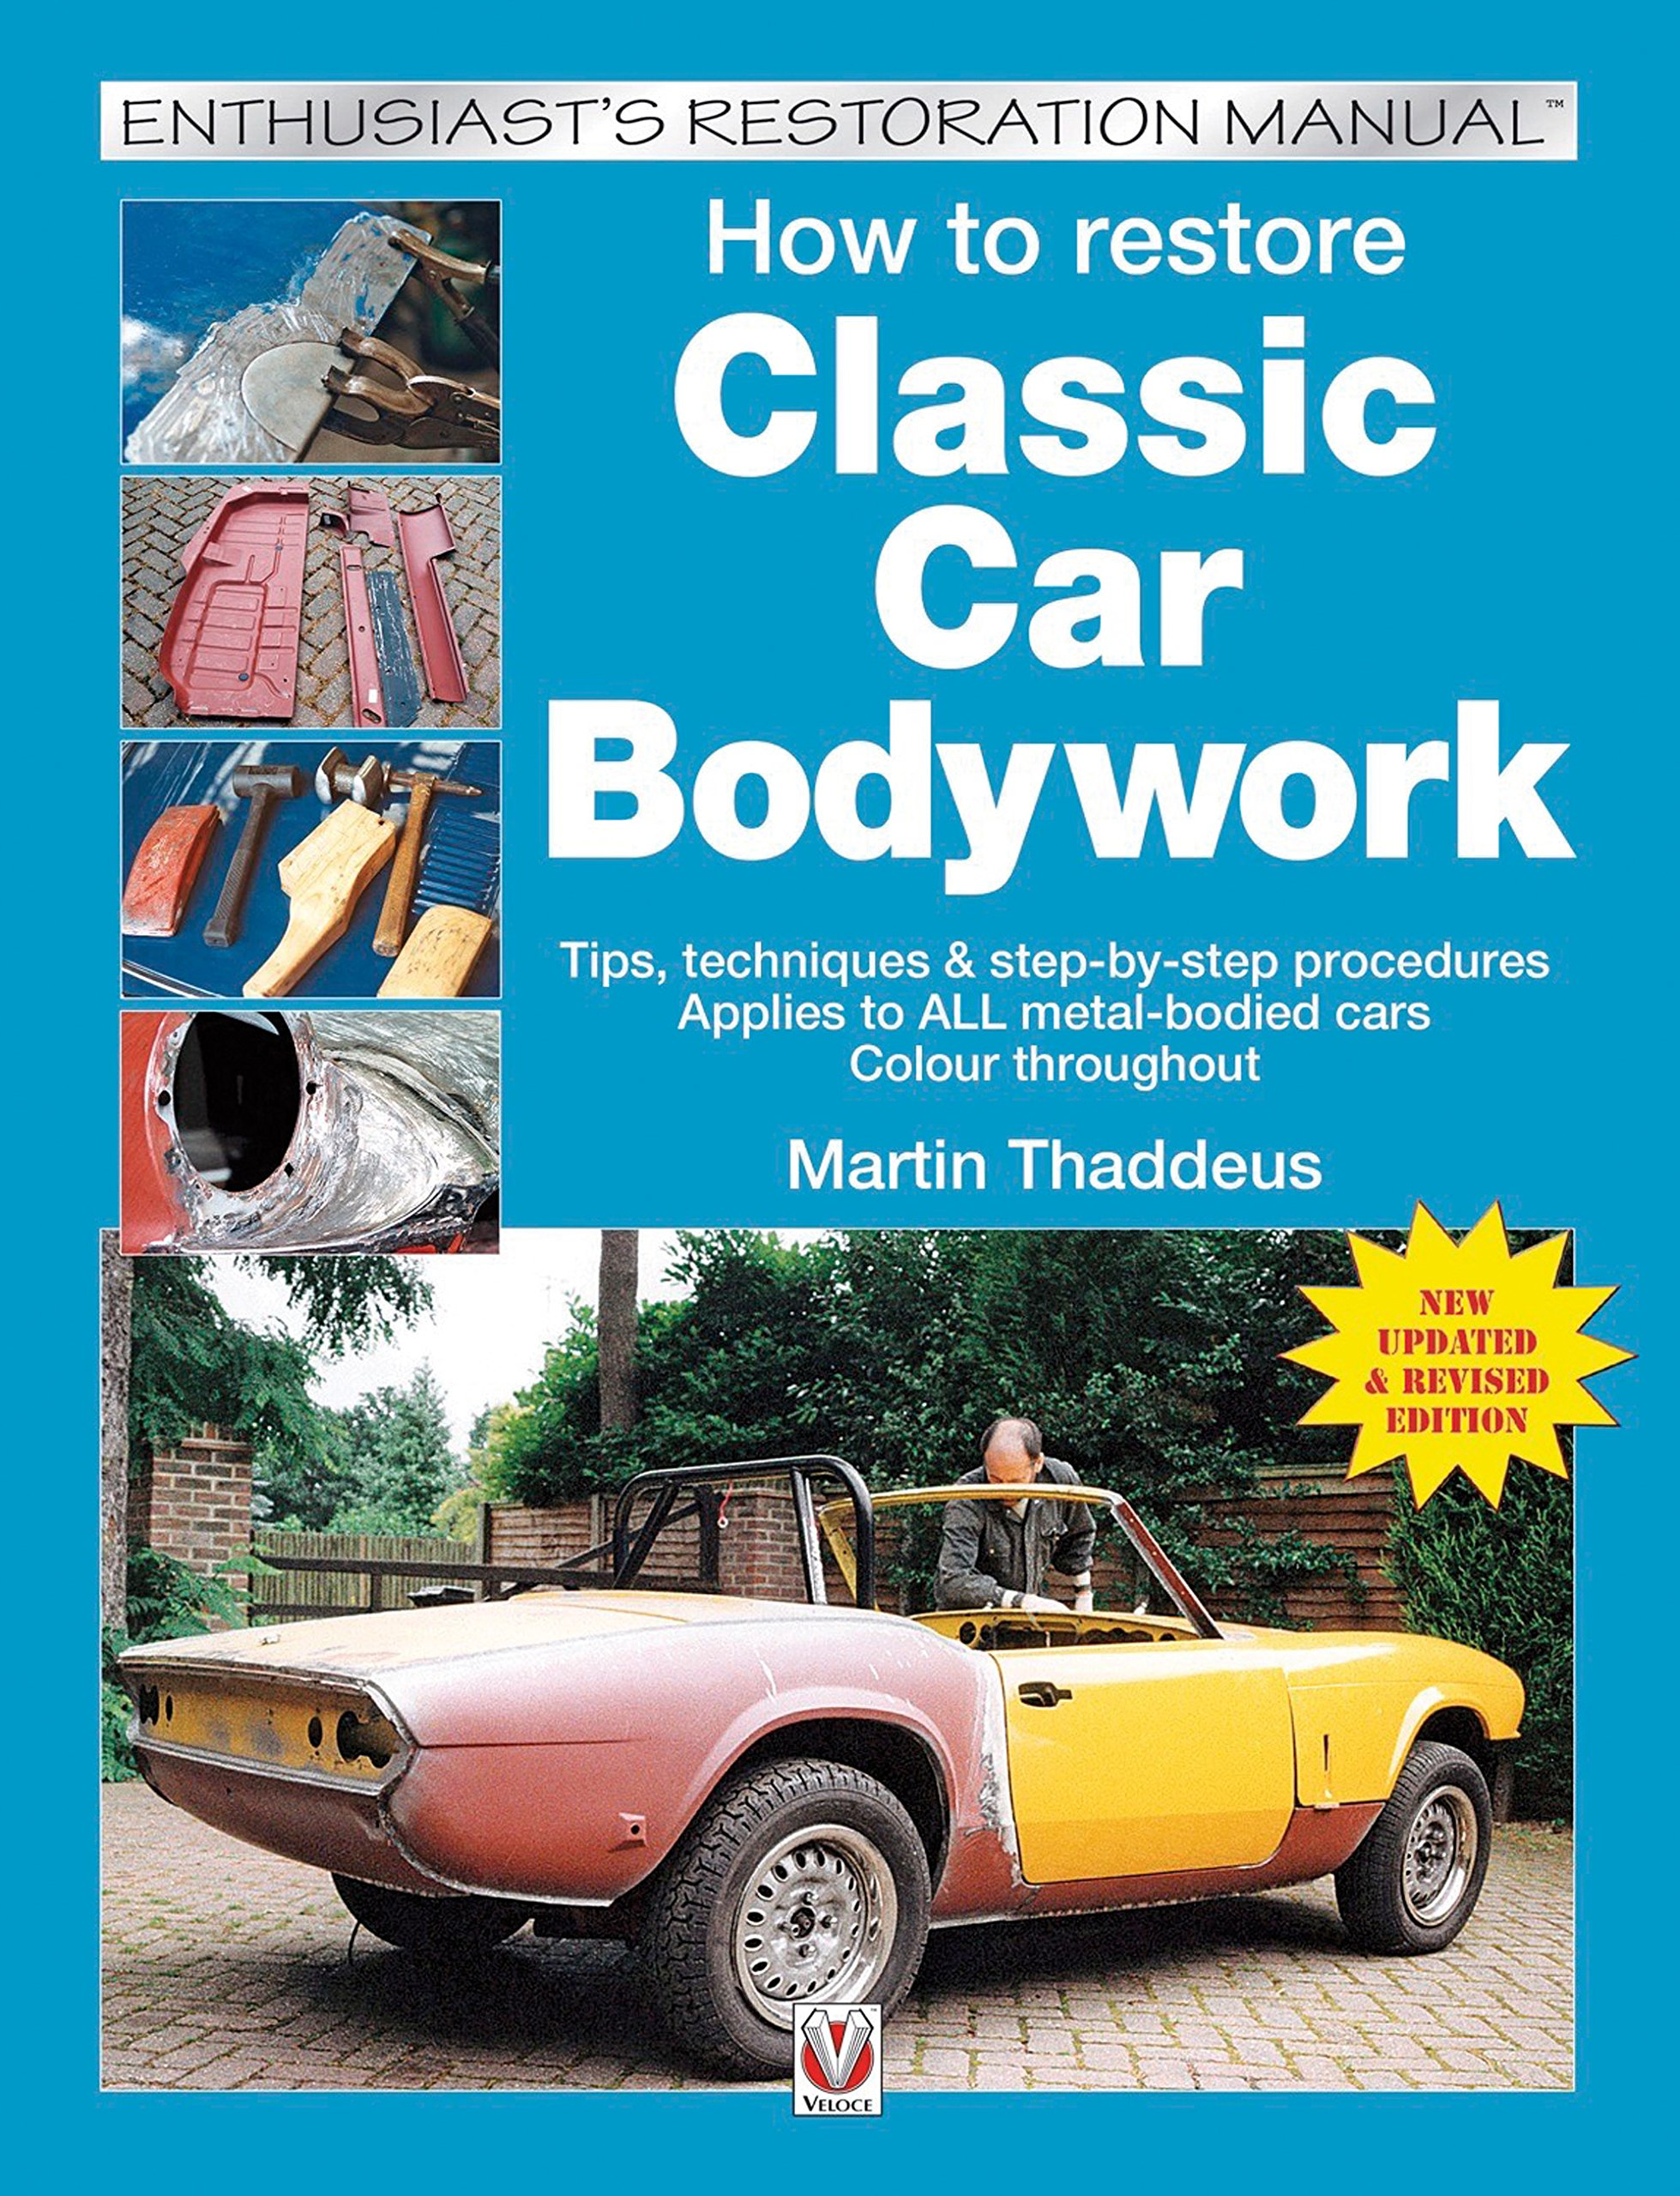 How To Restore Classic Car Bodywork Enthusiast S Restoration